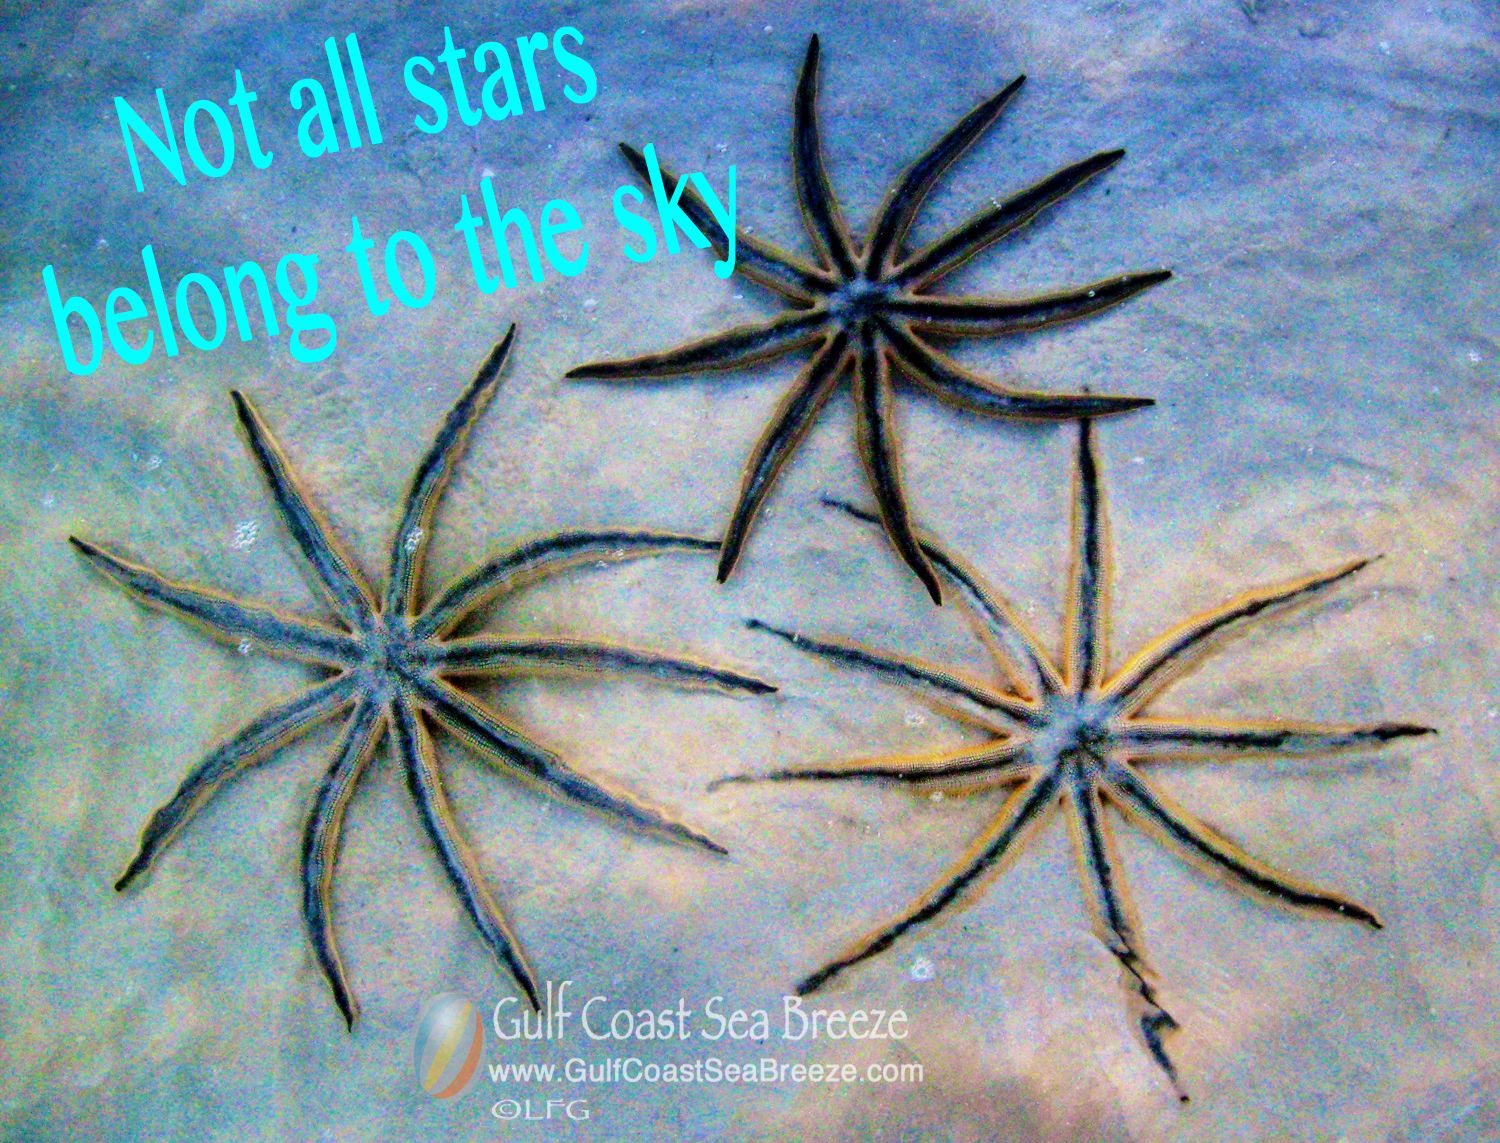 Not all stars belong to the sky!